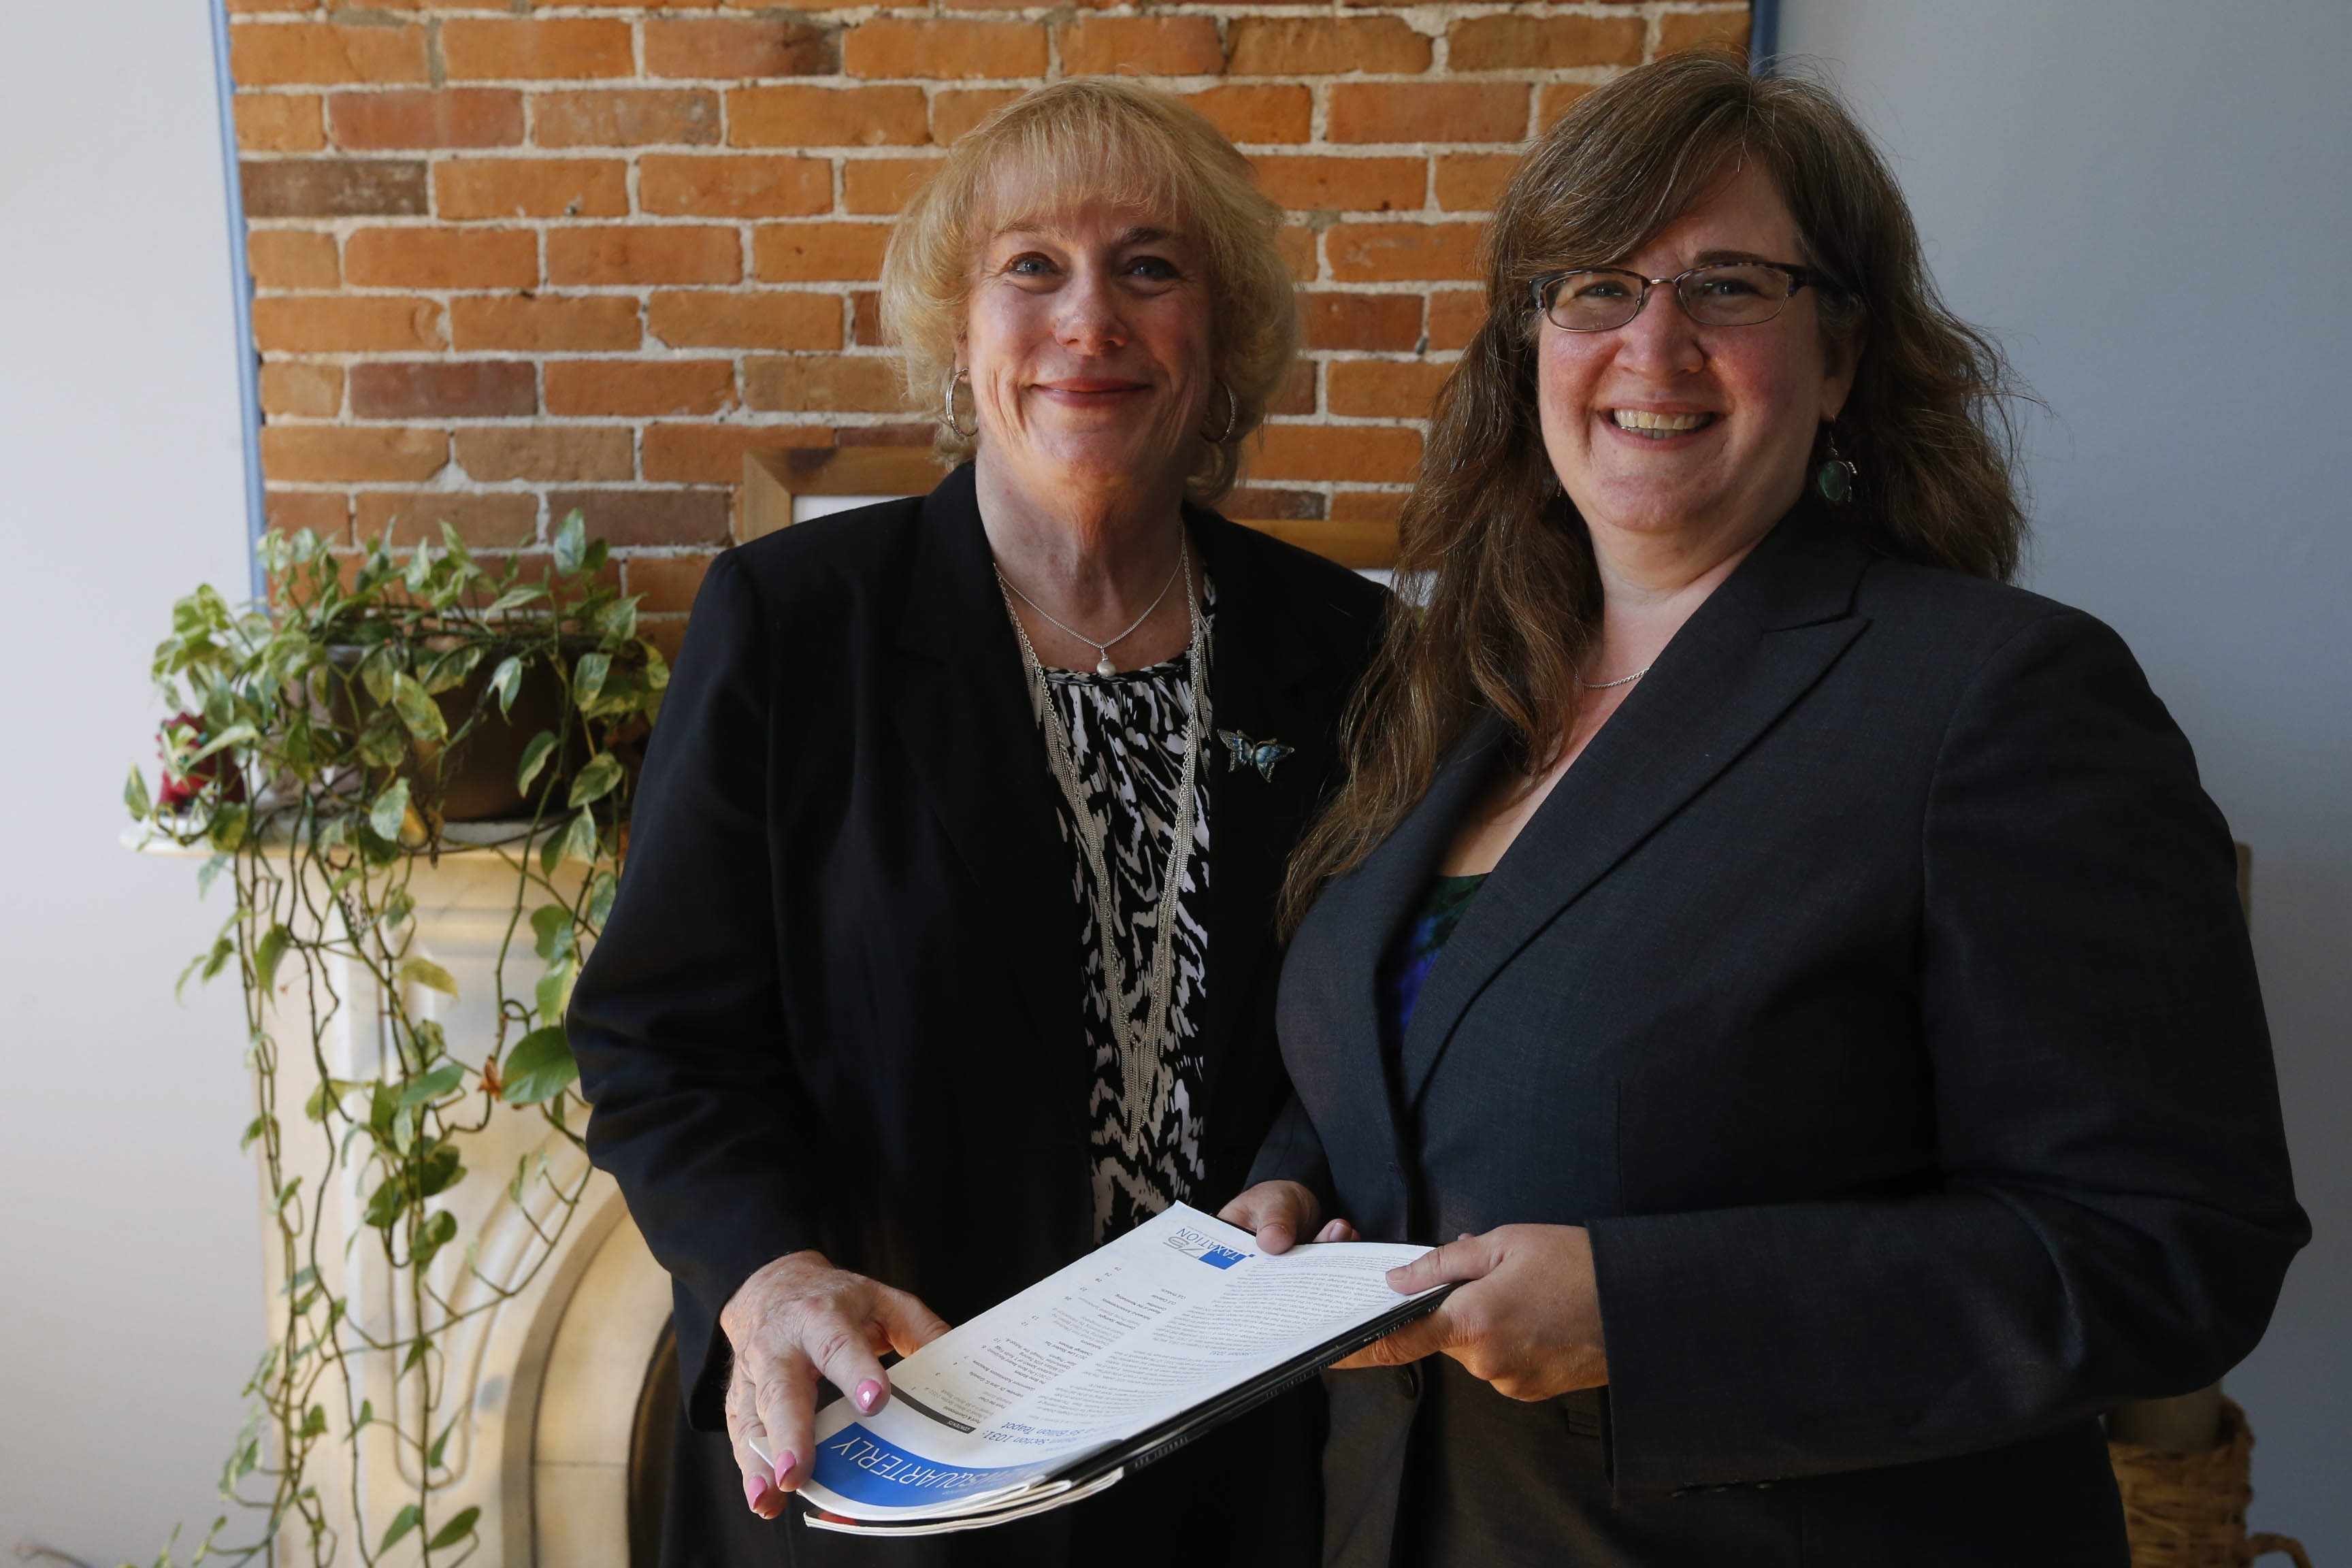 Robert Kirkham/Buffalo NewsRoberta J. O'Toole, left, spent 24 years as town attorney in Wheatfield. After retiring from the town last month, she formed a new practice in Buffalo's Allentown neighborhood with her law partner, Heidi I. Jones.